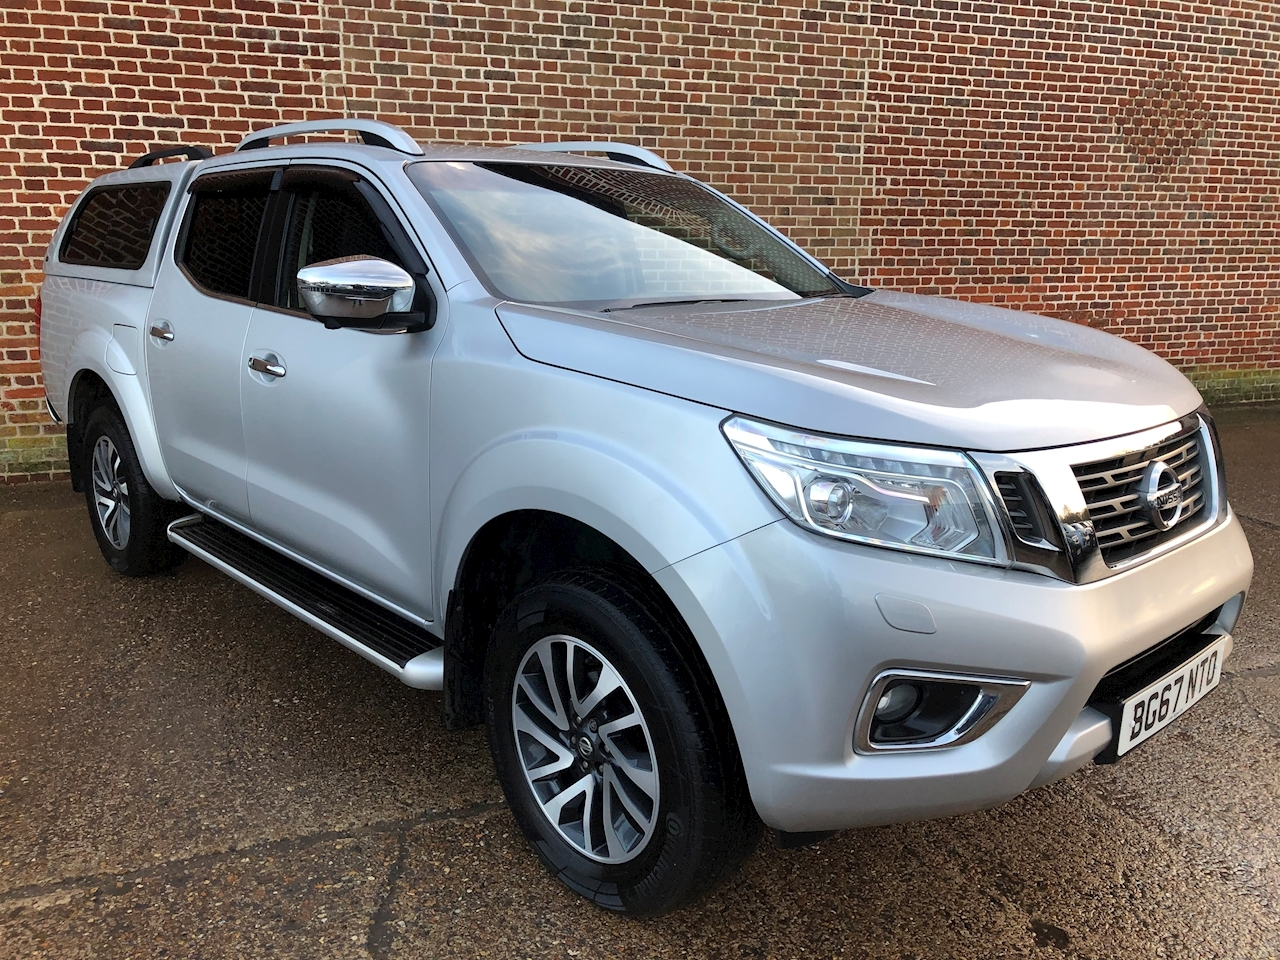 2.3 dCi Tekna Double Cab Pickup 4dr Diesel Auto 4WD (190 ps)